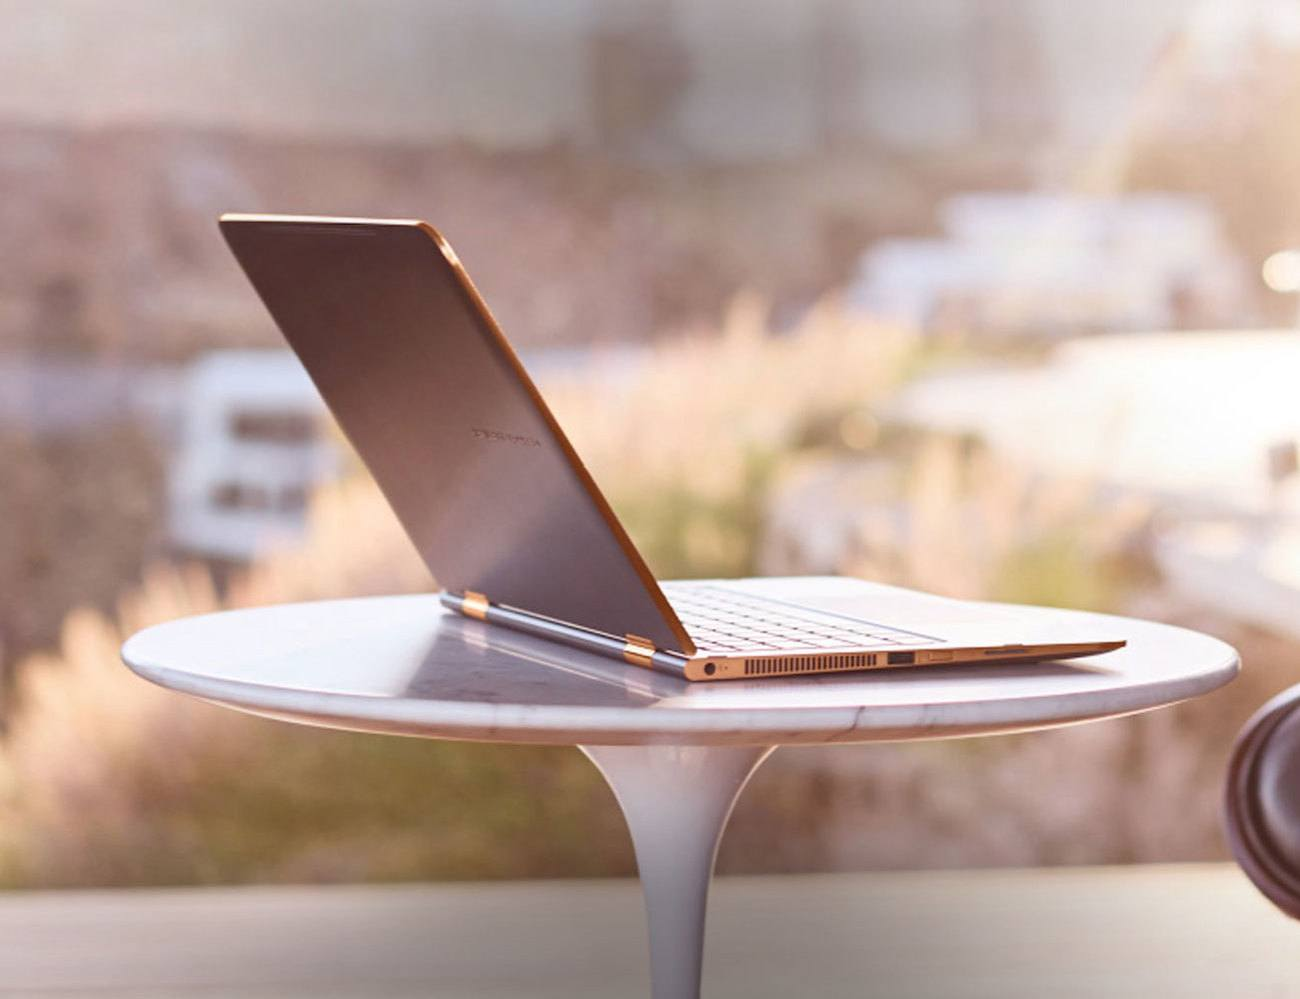 HP 15-inch Spectre x360 Convertible Laptop